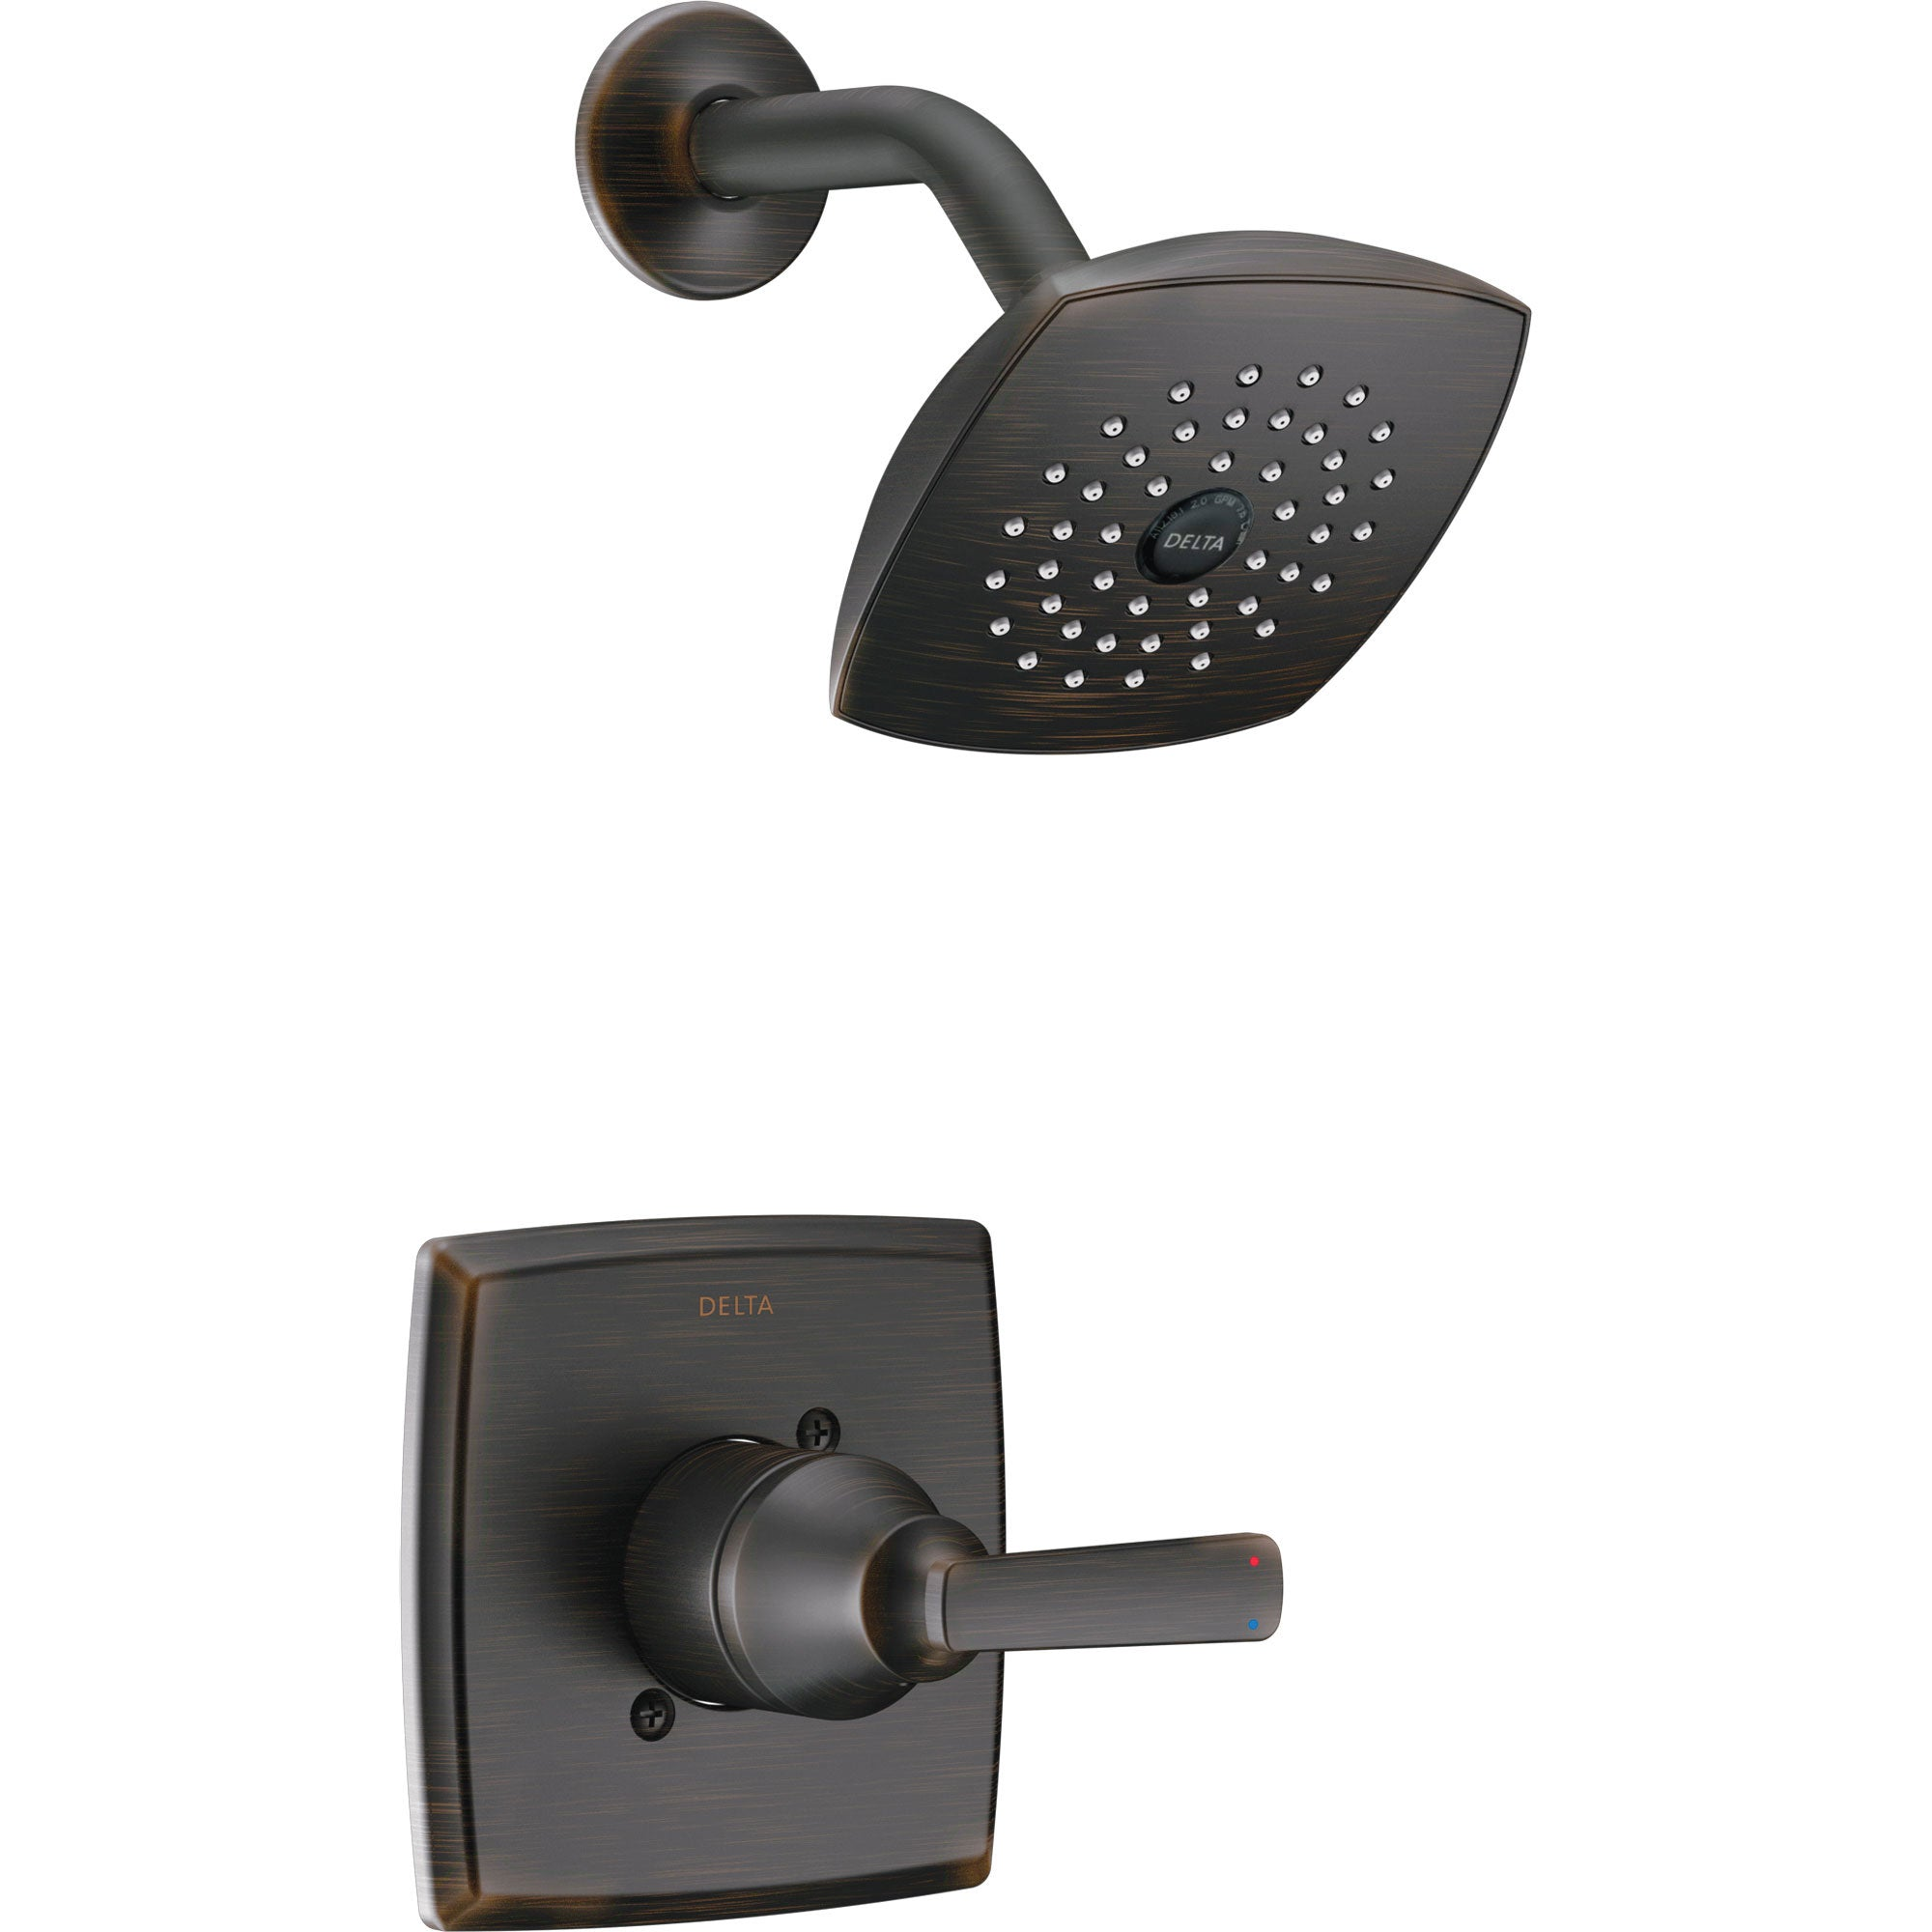 Delta Ashlyn Modern 14 Series Watersense Venetian Bronze Finish Single Handle Shower Only Faucet INCLUDES Rough-in Valve D1232V